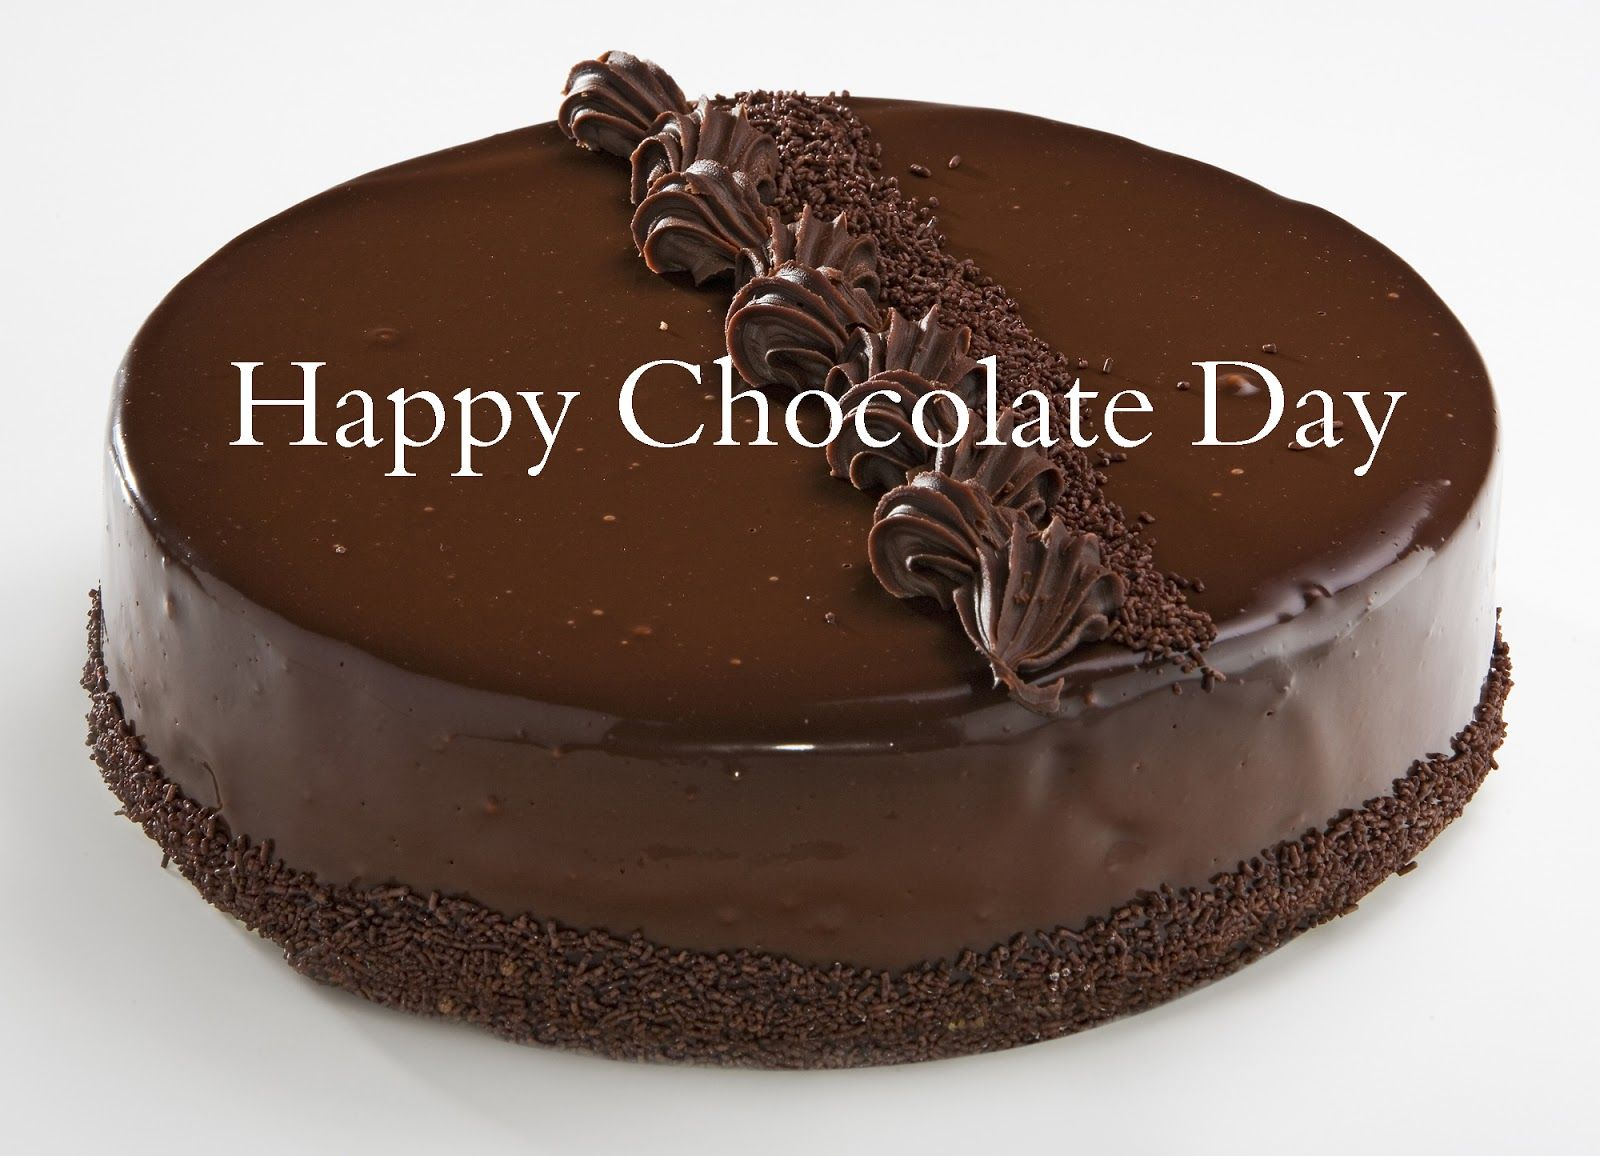 Chocolate Day Animated Gifs Images 9th February 2017 Best Pictures Happy Chocolate Day Chocolate Day Chocolate Day Images